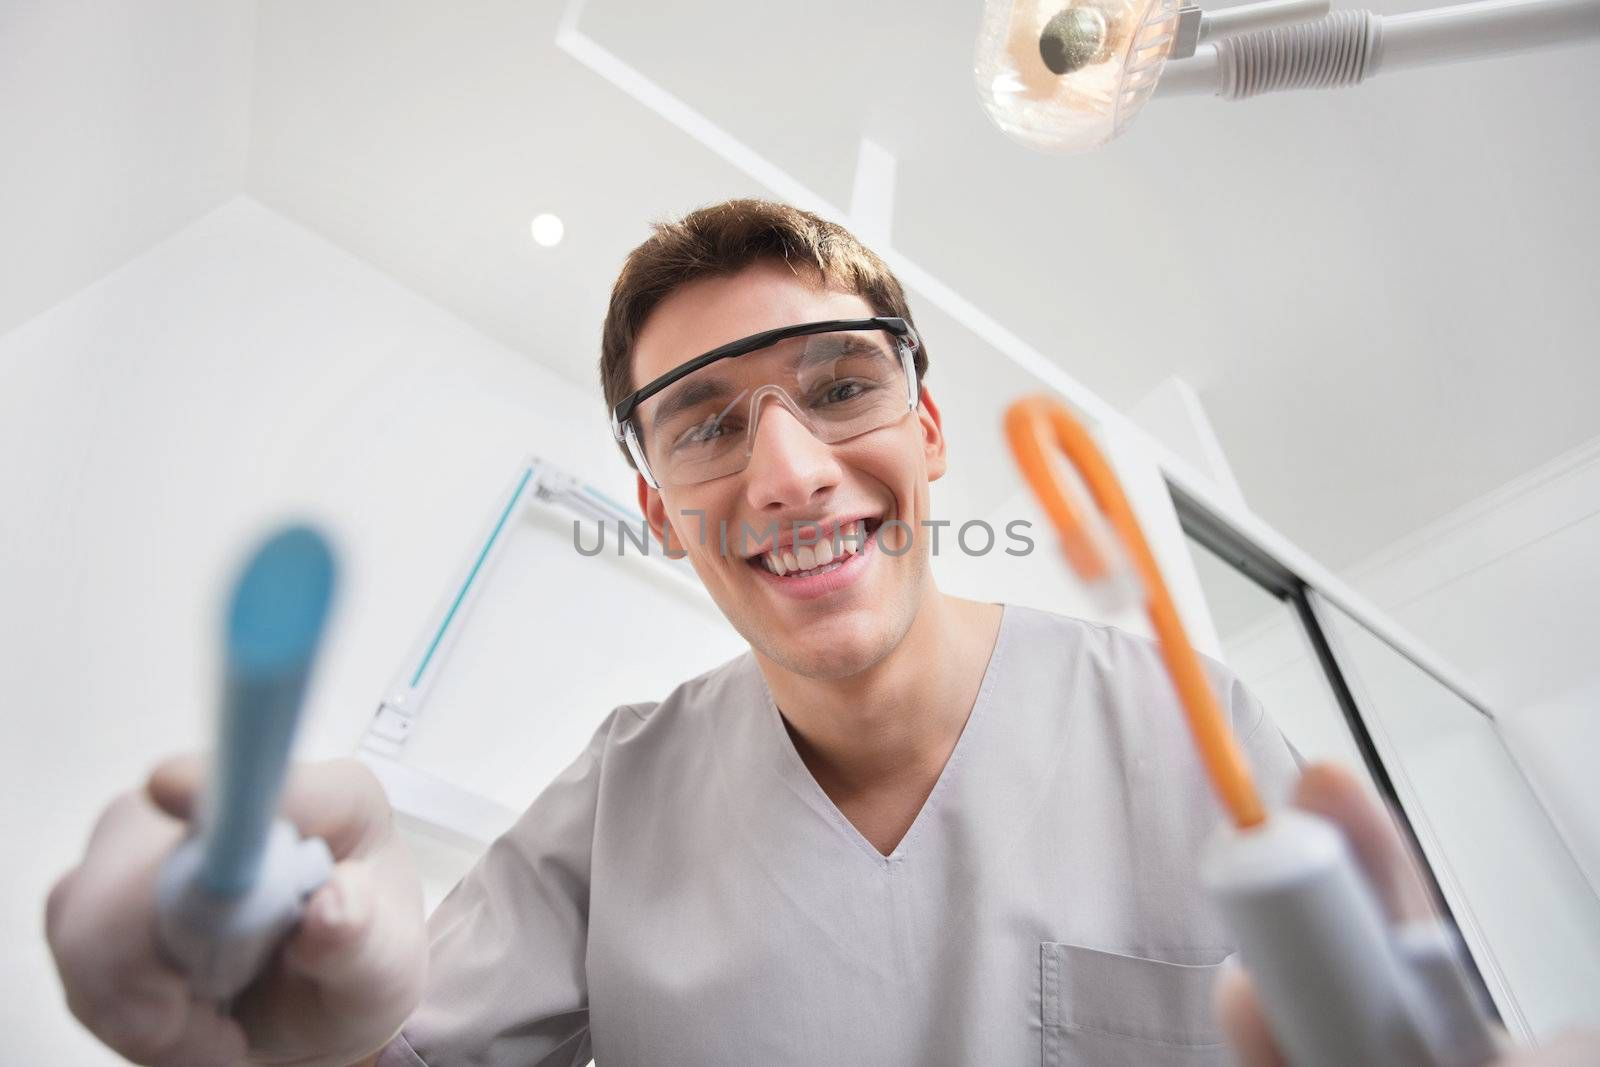 Close-up of young smiling dentist holding dental tools